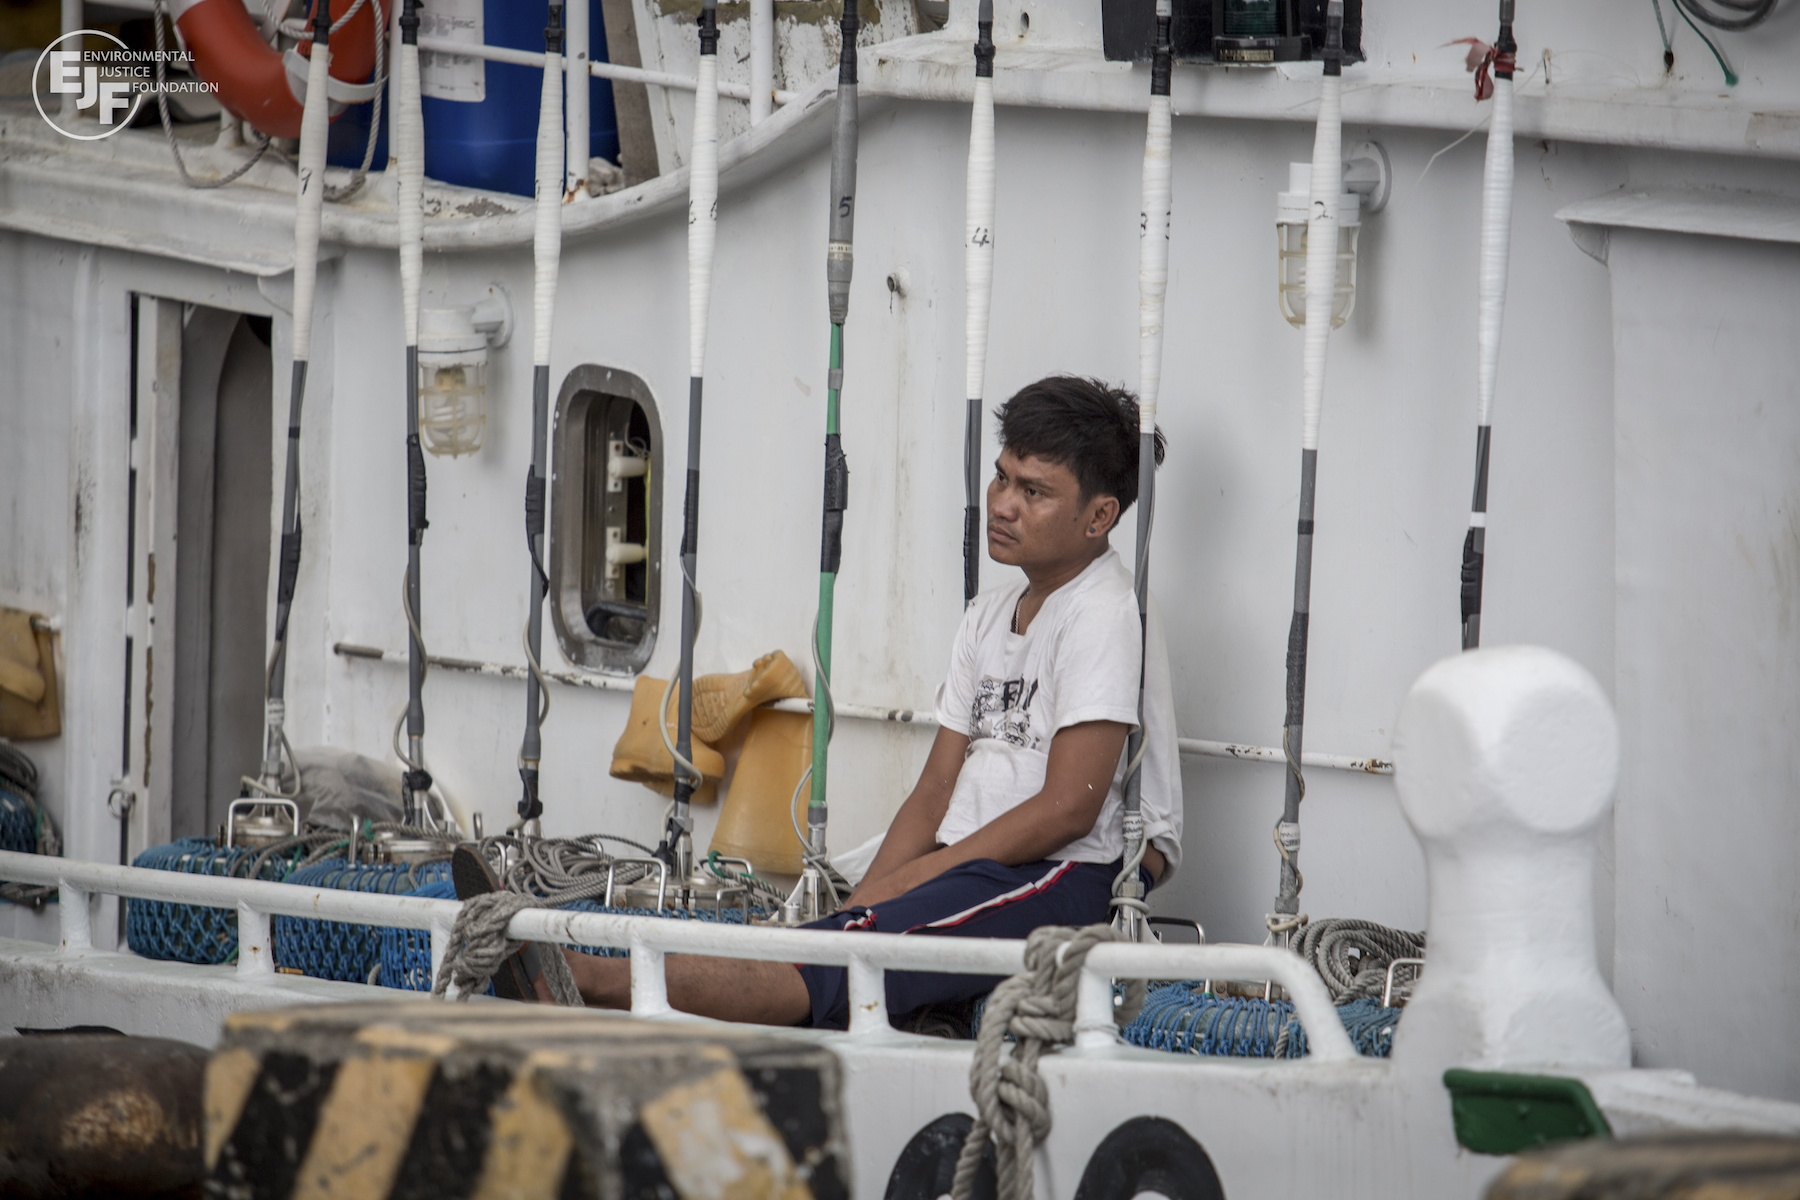 NGOs call on the Taiwanese government to end abuse of migrants fishers